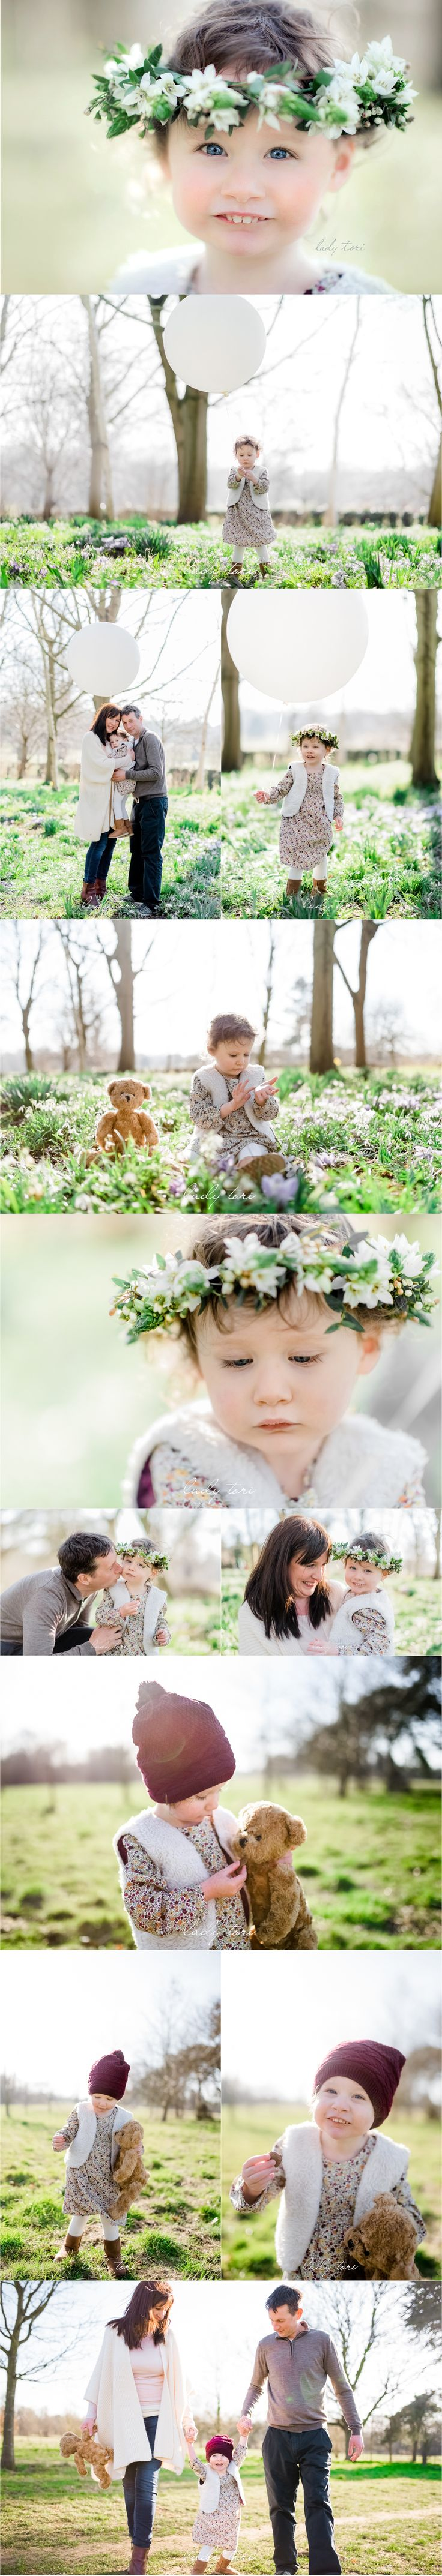 Pretty Child Family Photos Inspiration | Bohemian & Cute - by Lady Tori Photography